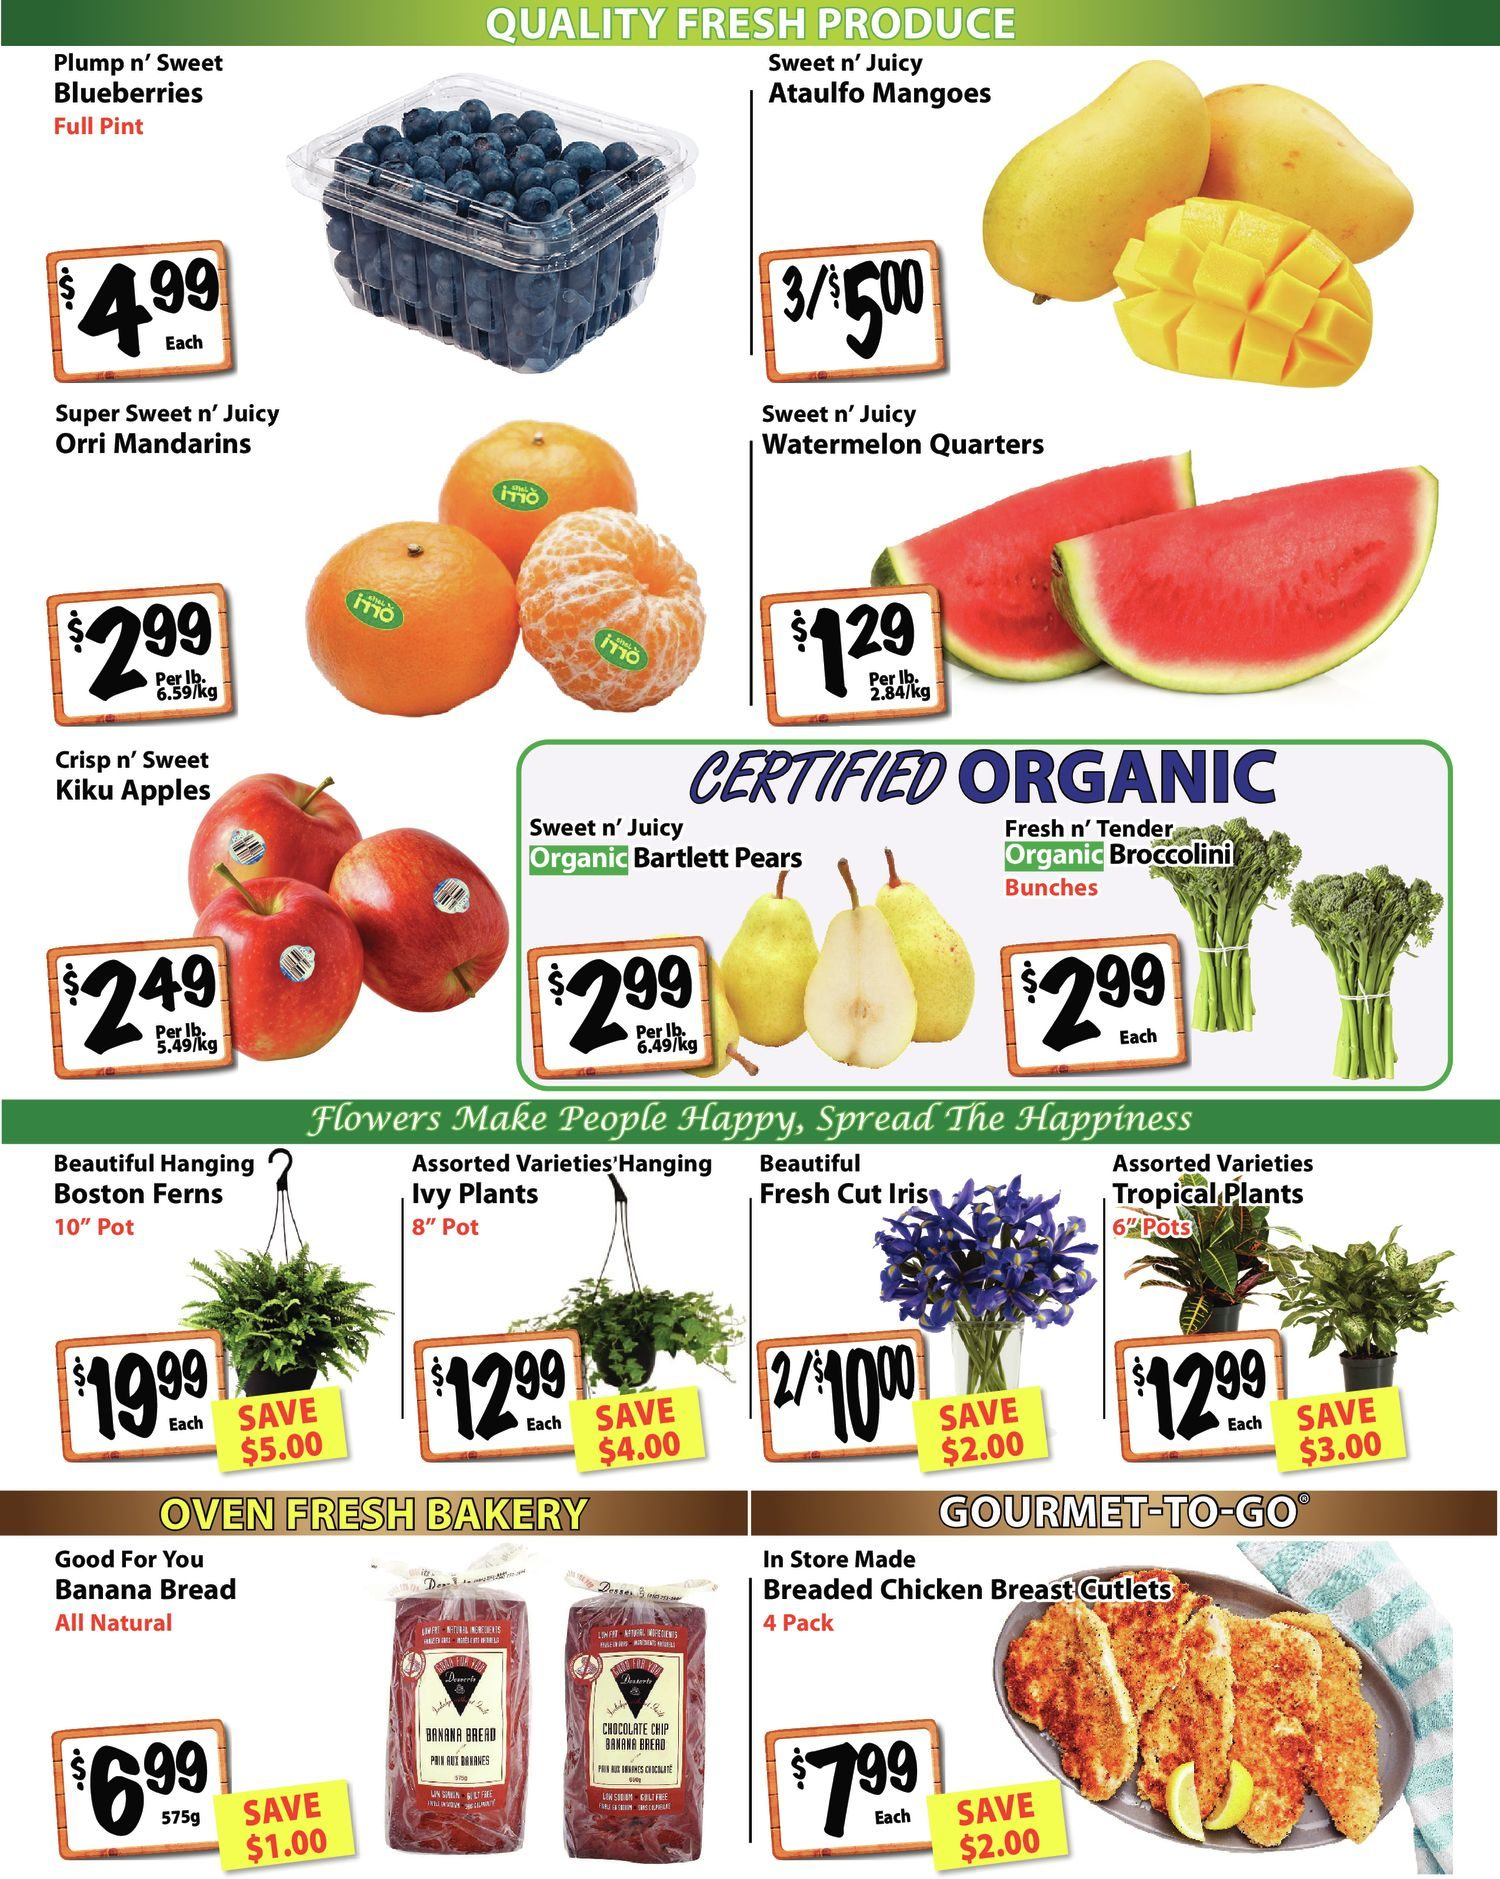 The Garden Basket - Weekly Flyer Specials - Page 2